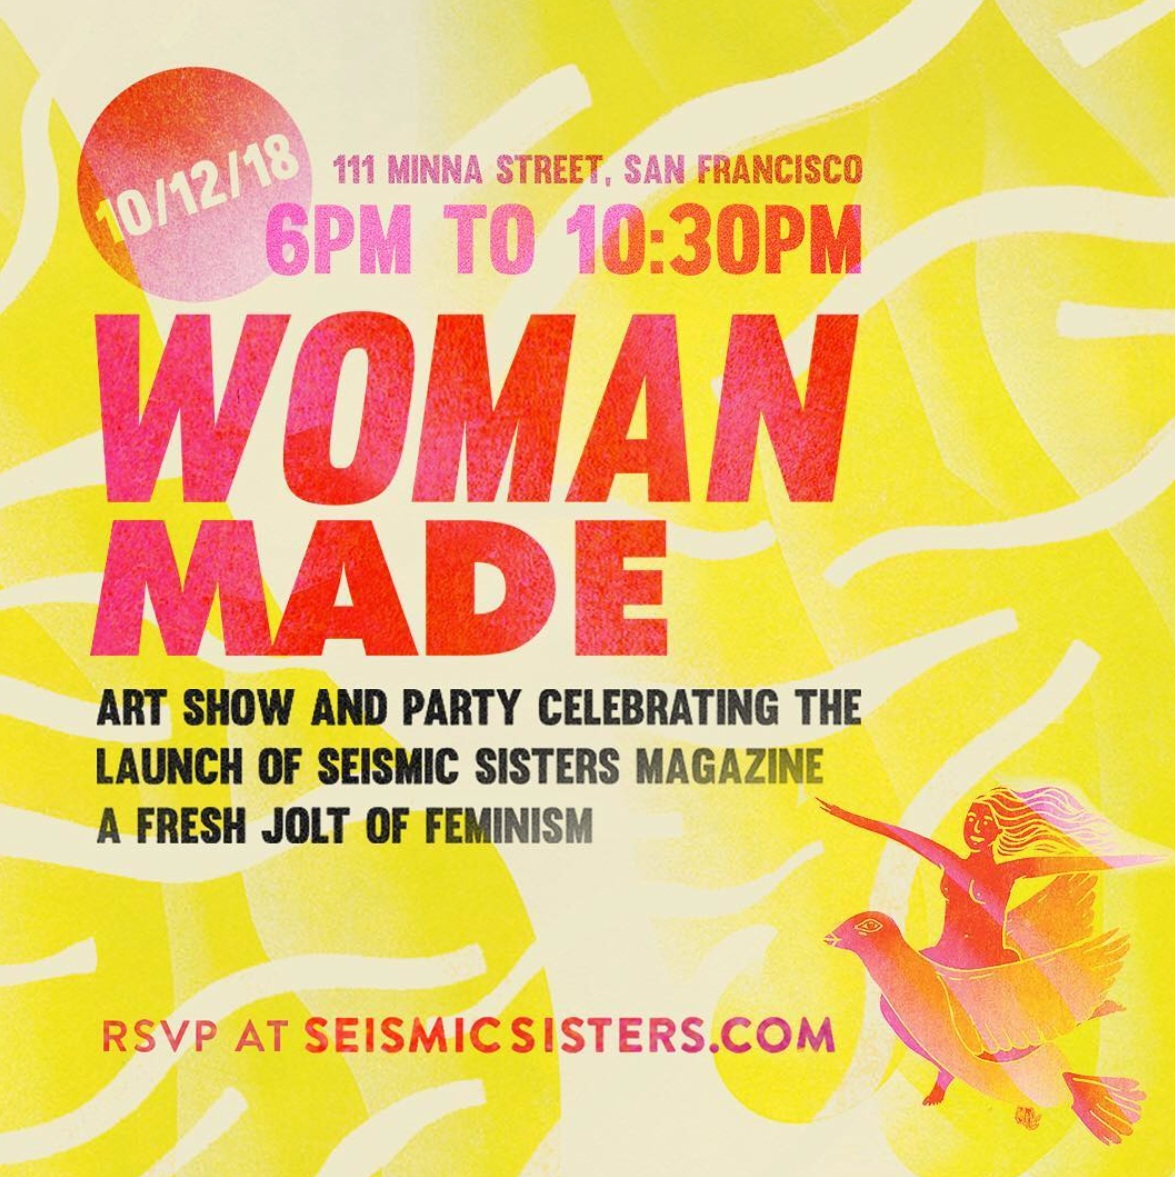 Woman Made Art Show Poster by Tori Seitelman